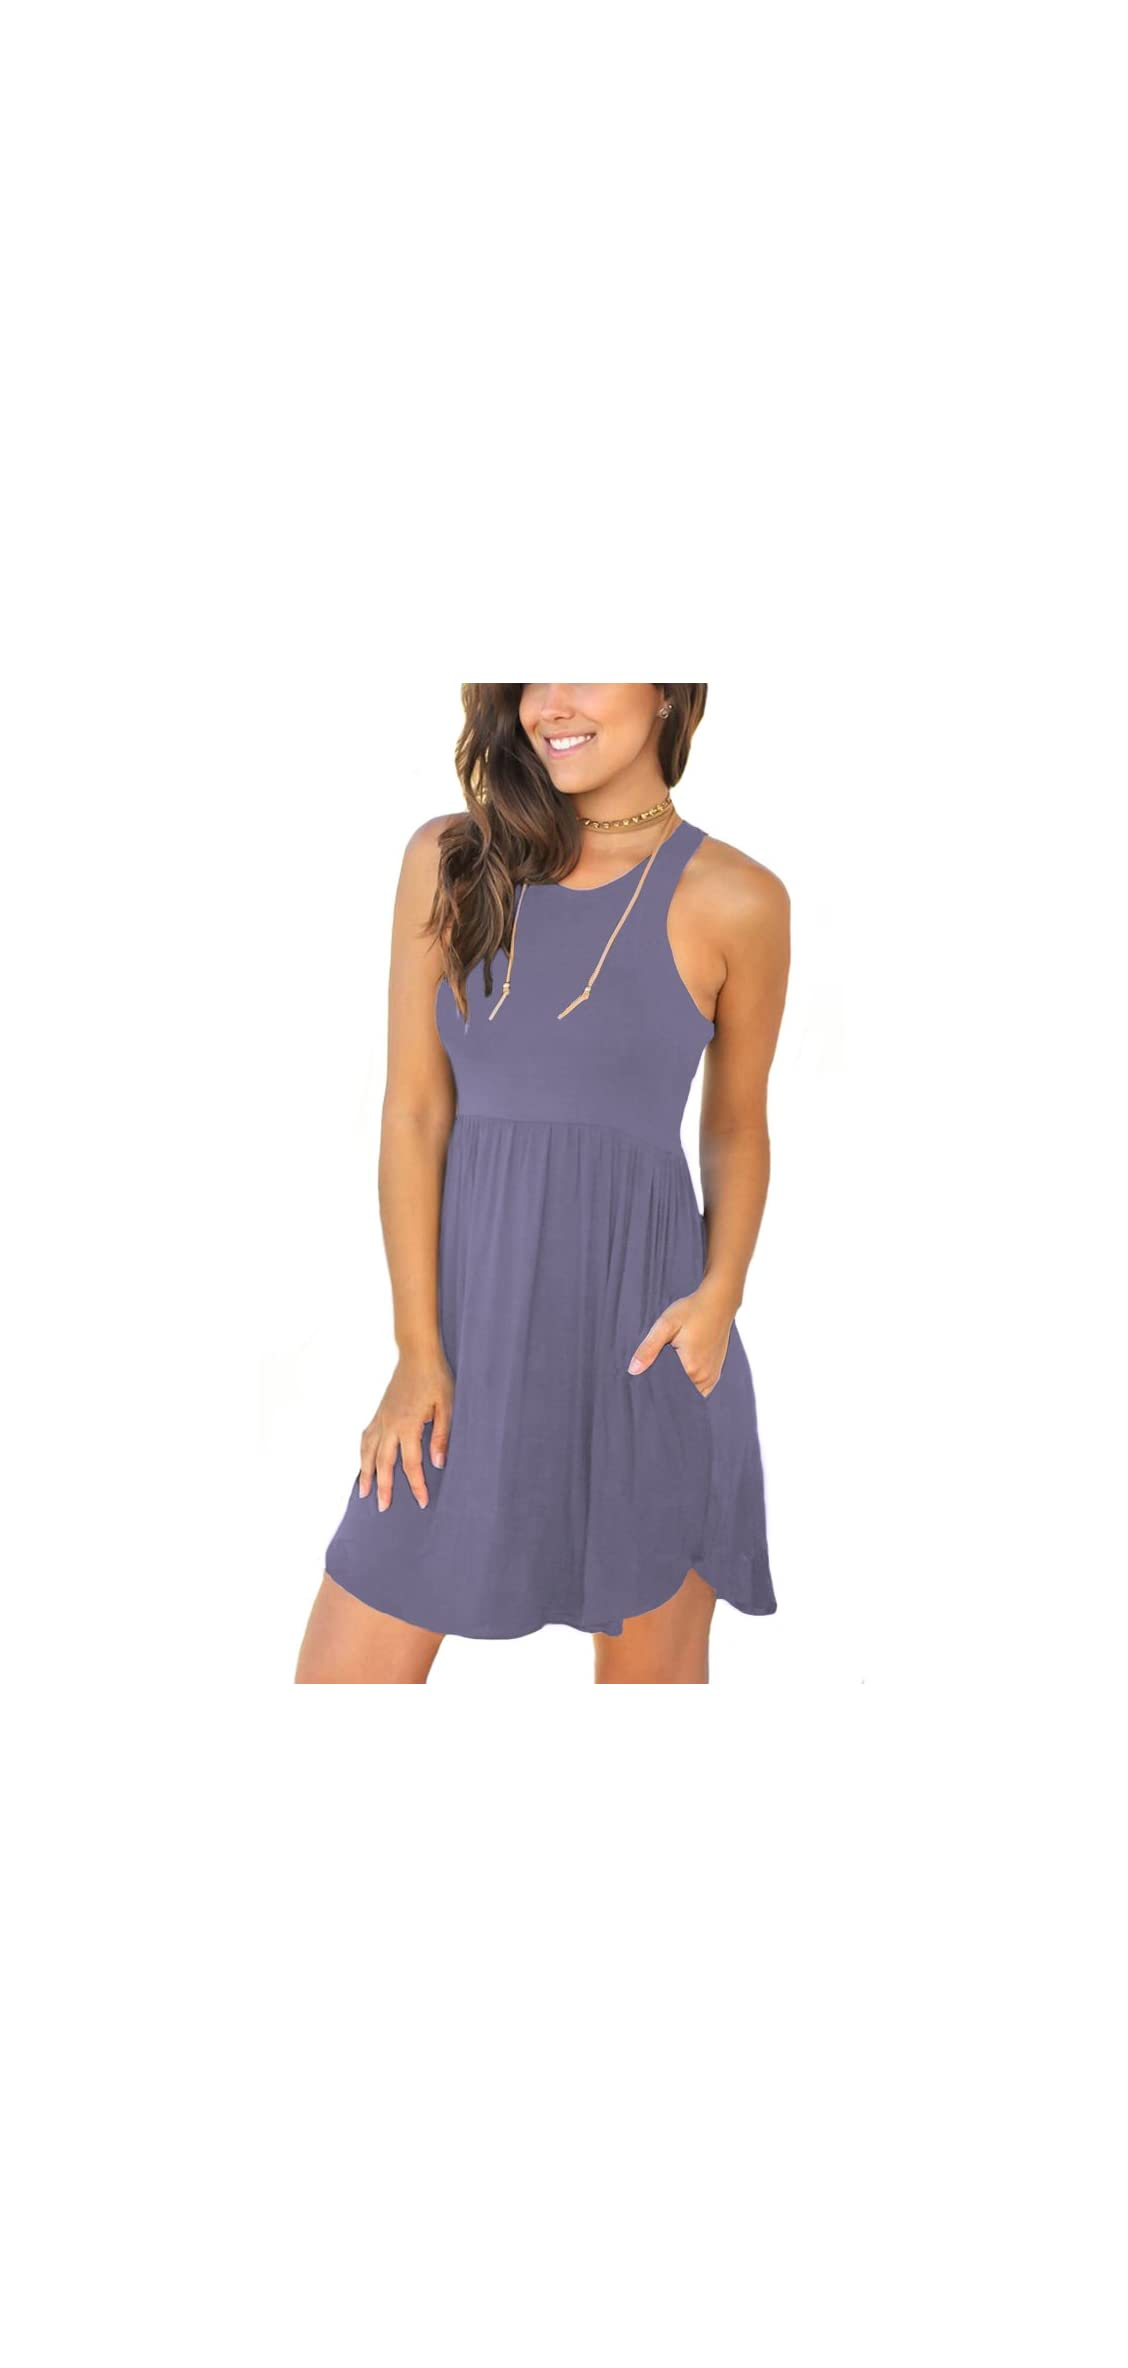 Women's Summer Casual T Shirt Dresses Swimsuit Cover